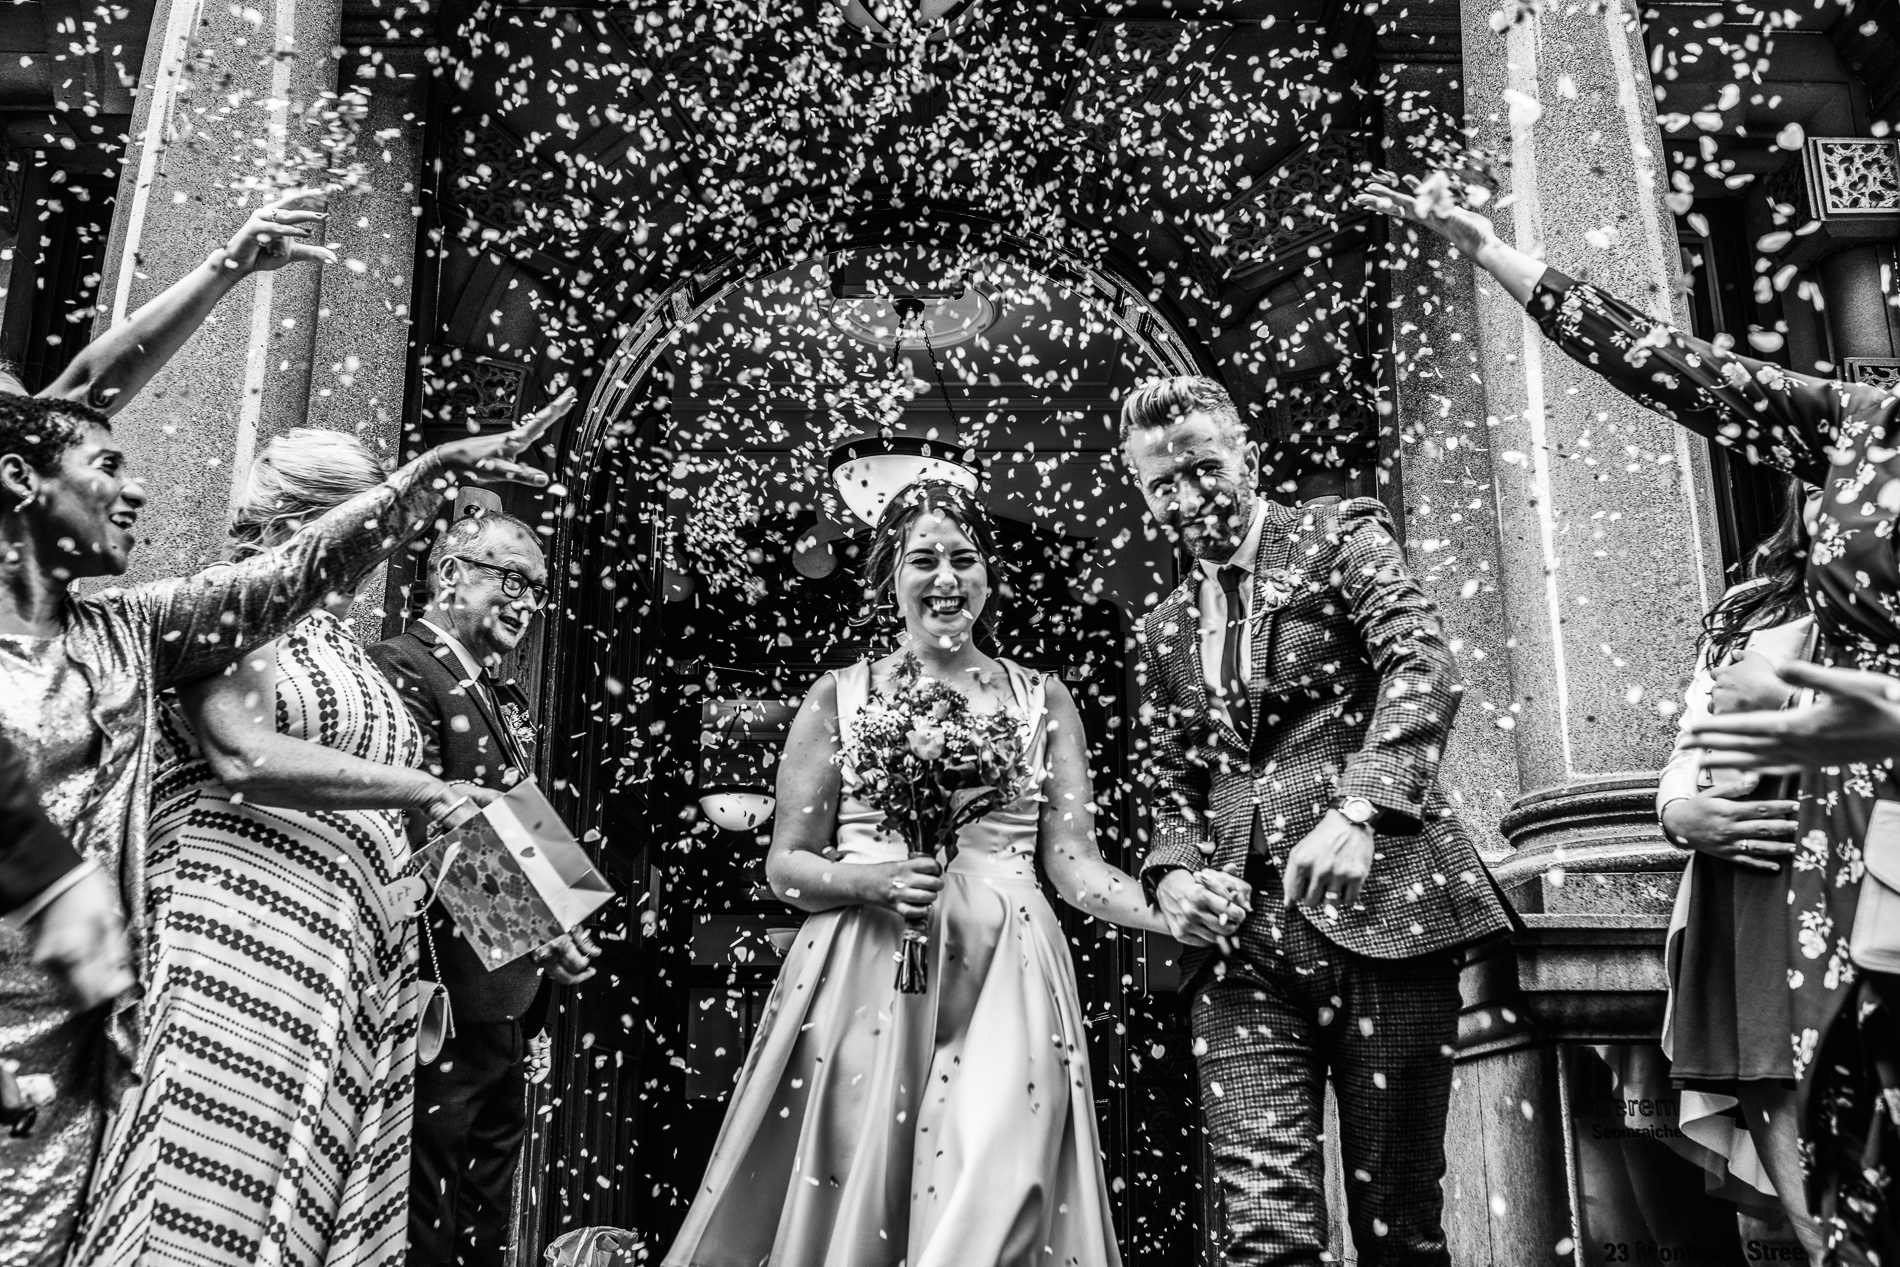 Glasgow, Scotland - City Chambers Elopement Ceremony Photo | Even with less than 30 guests, you can still get a great confetti shot